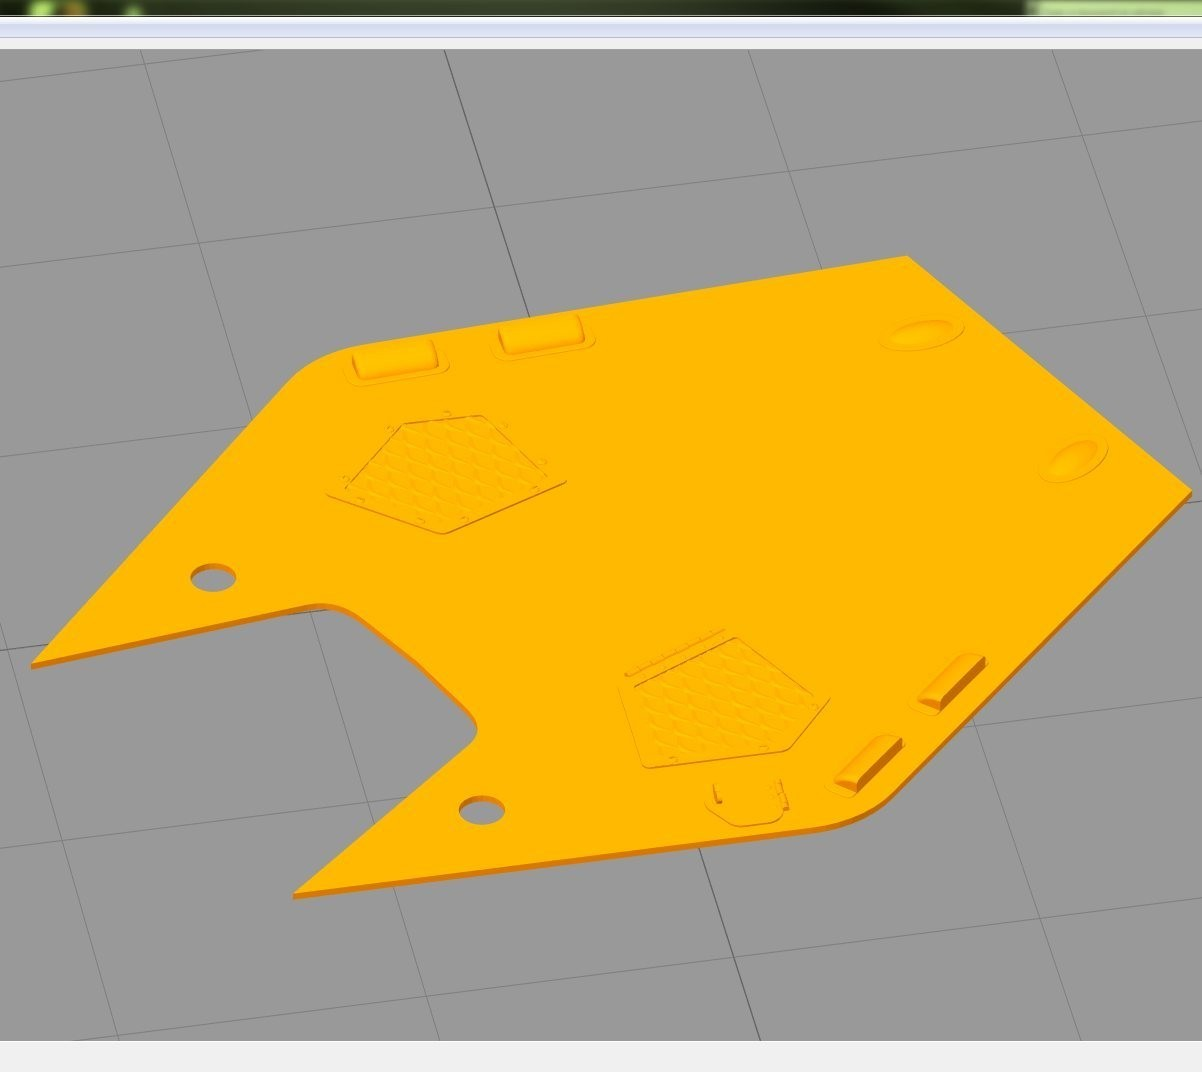 MicroIGB01.jpg Download free STL file Revell 1:32 Lynx Has.3 conversion kit from folding tail to fixed tail. • 3D printer object, tahustvedt